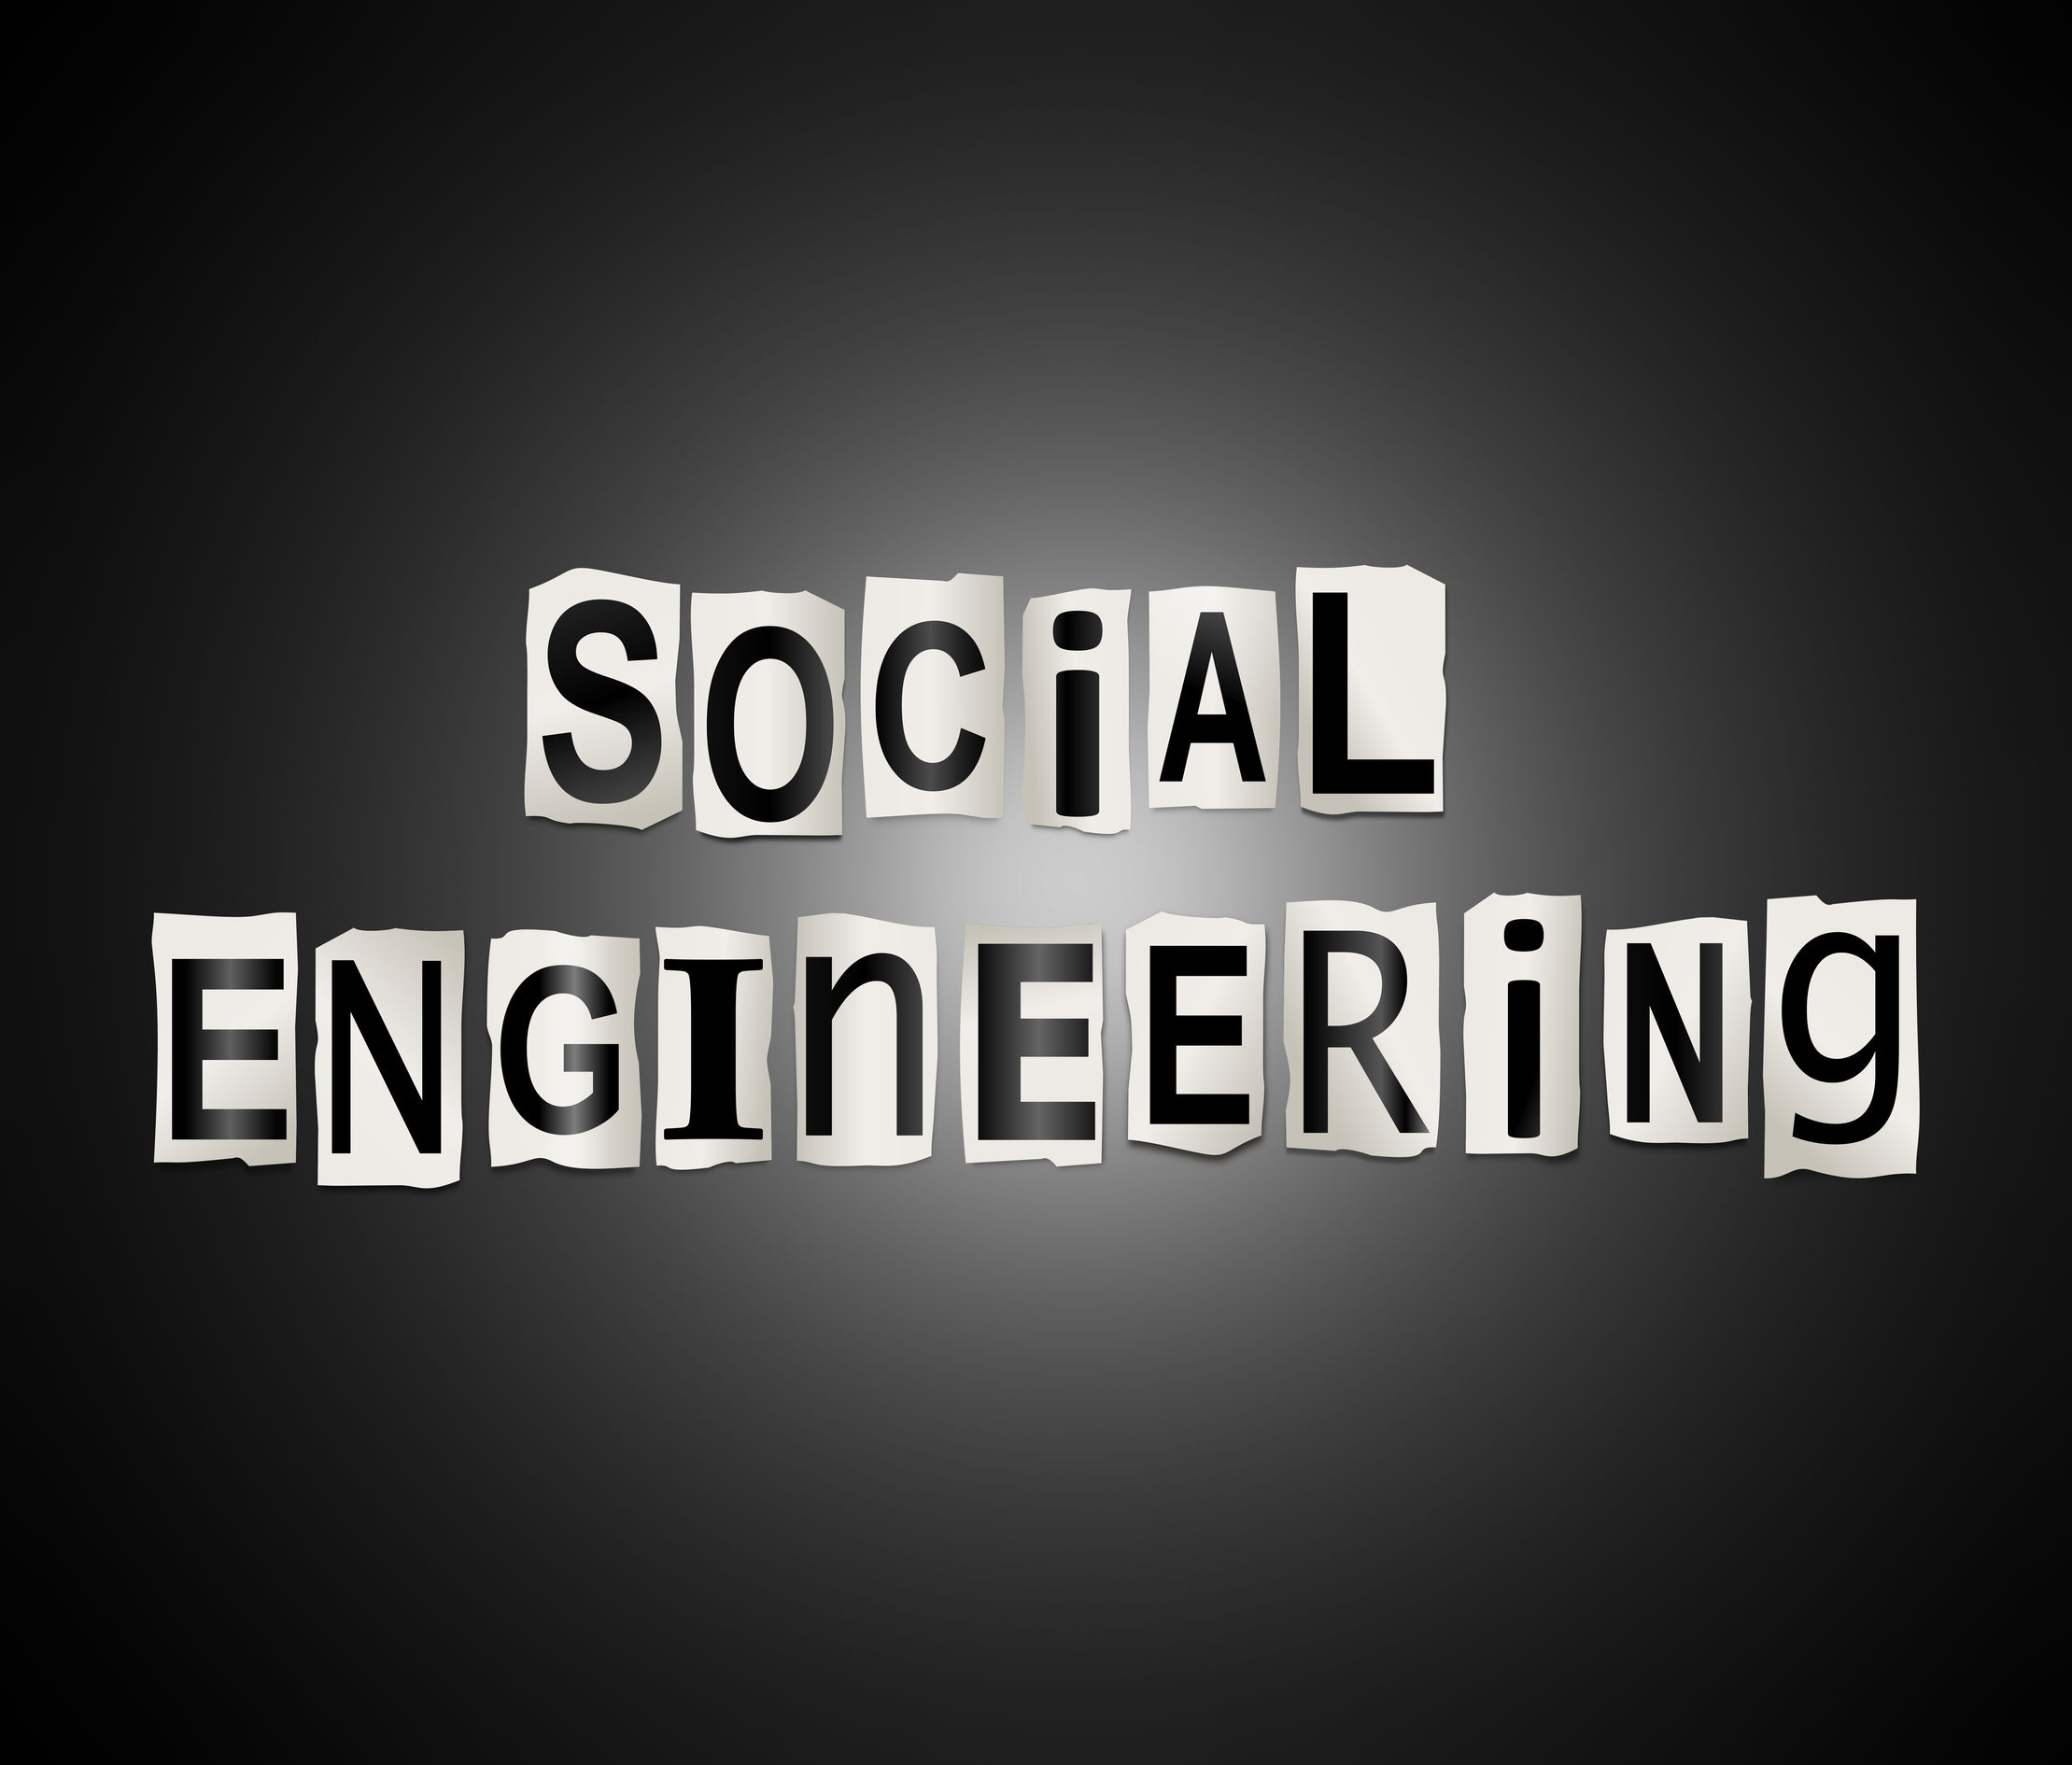 thought control social engineering